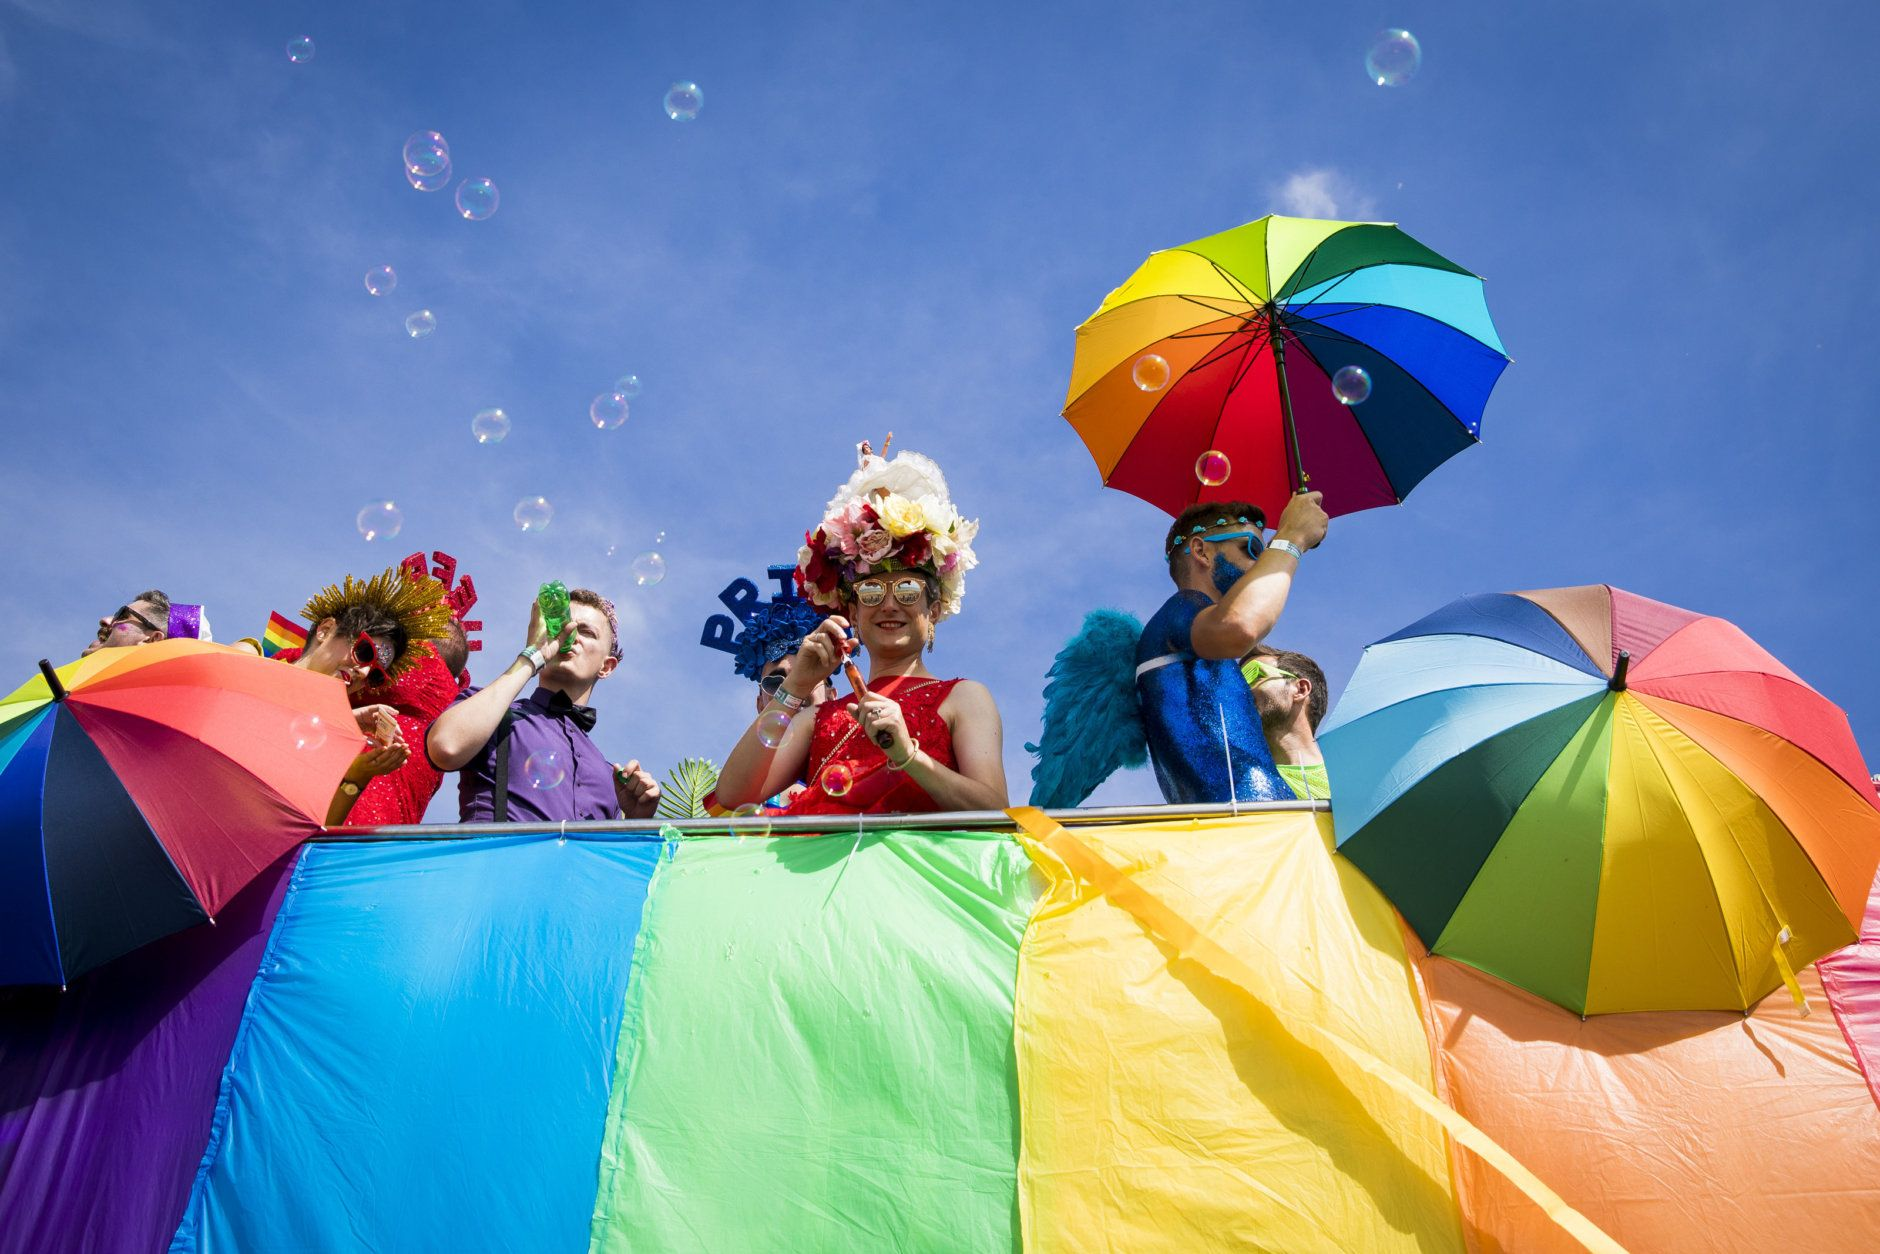 BRIGHTON, ENGLAND - AUGUST 04:  Parade goers during Brighton Pride 2018 on August 4, 2018 in Brighton, England.  (Photo by Tristan Fewings/Getty Images)